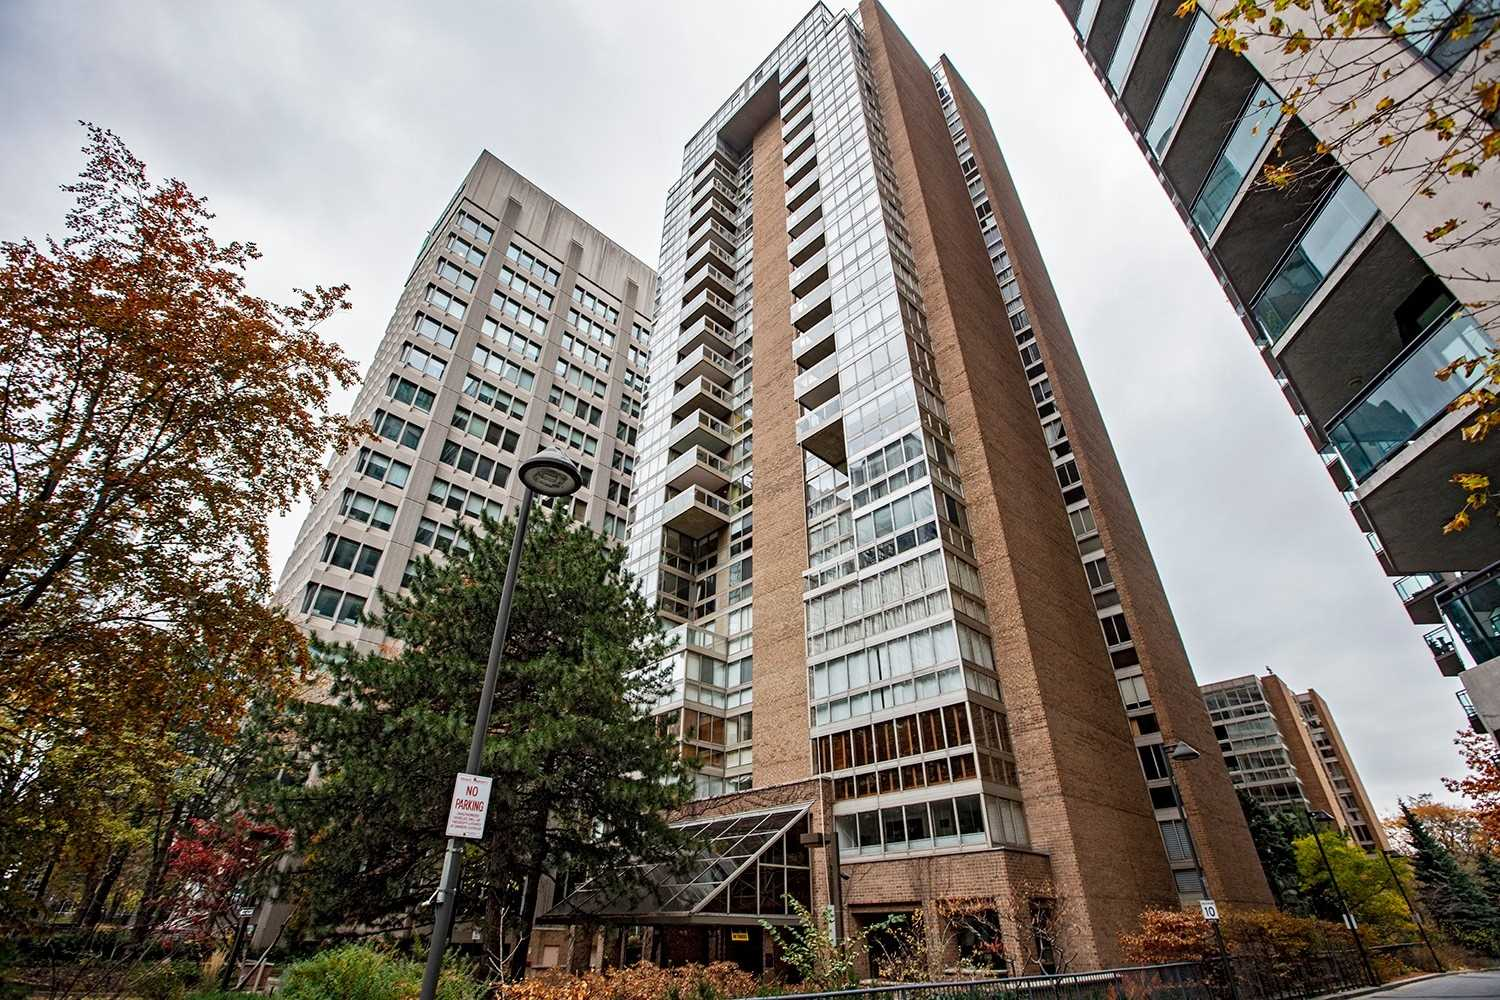 278 Bloor St, Toronto, Ontario M4W3M4, 1 Bedroom Bedrooms, 8 Rooms Rooms,2 BathroomsBathrooms,Condo Apt,For Sale,Bloor,C4846523